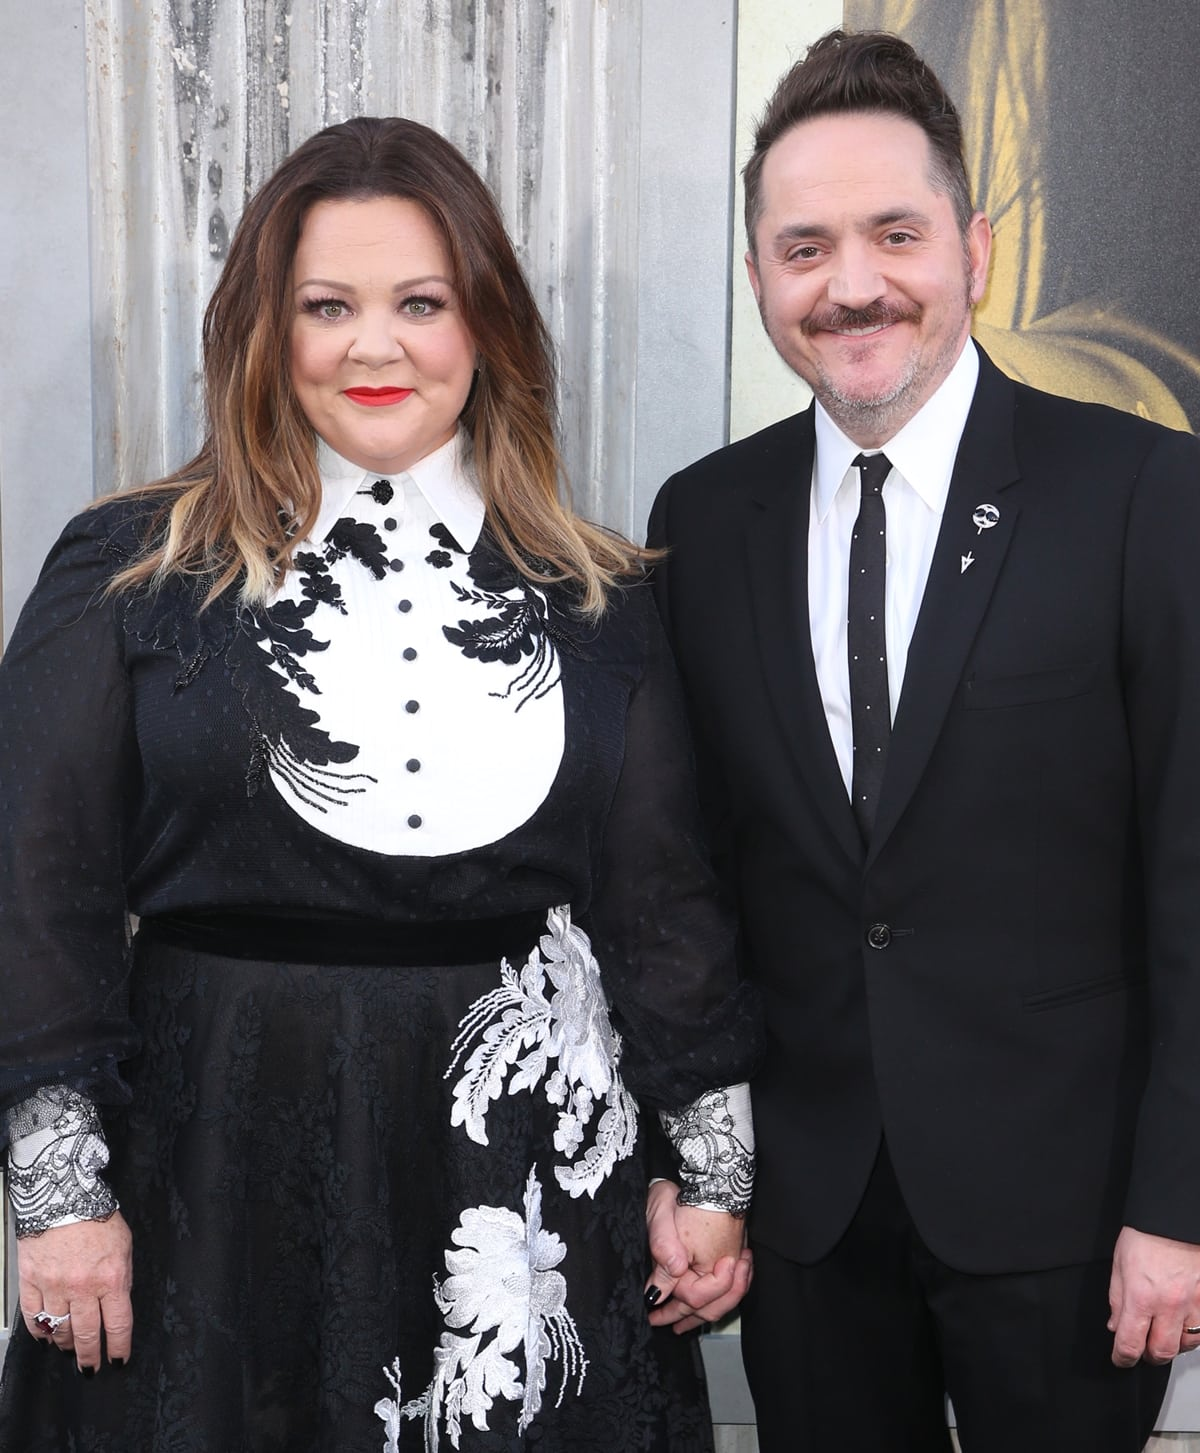 Melissa McCarthy and her husband Ben Falcone at the premiere of The Kitchen